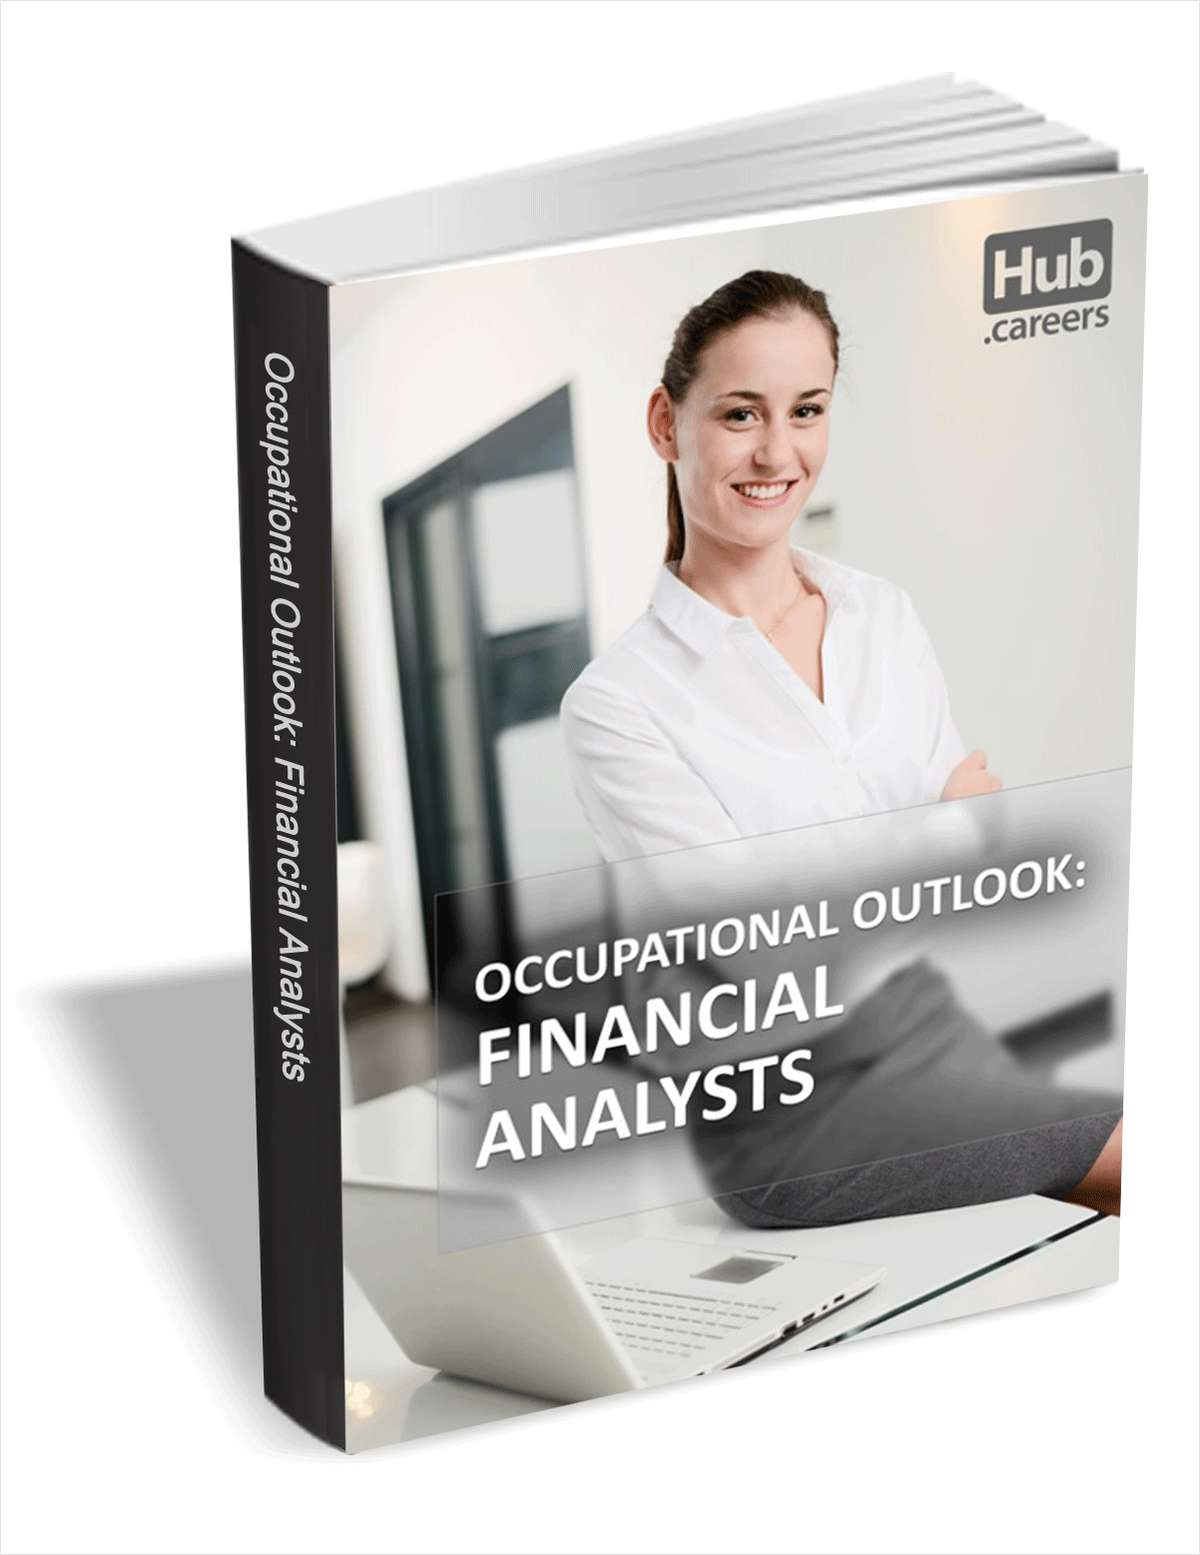 Financial Analysts - Occupational Outlook